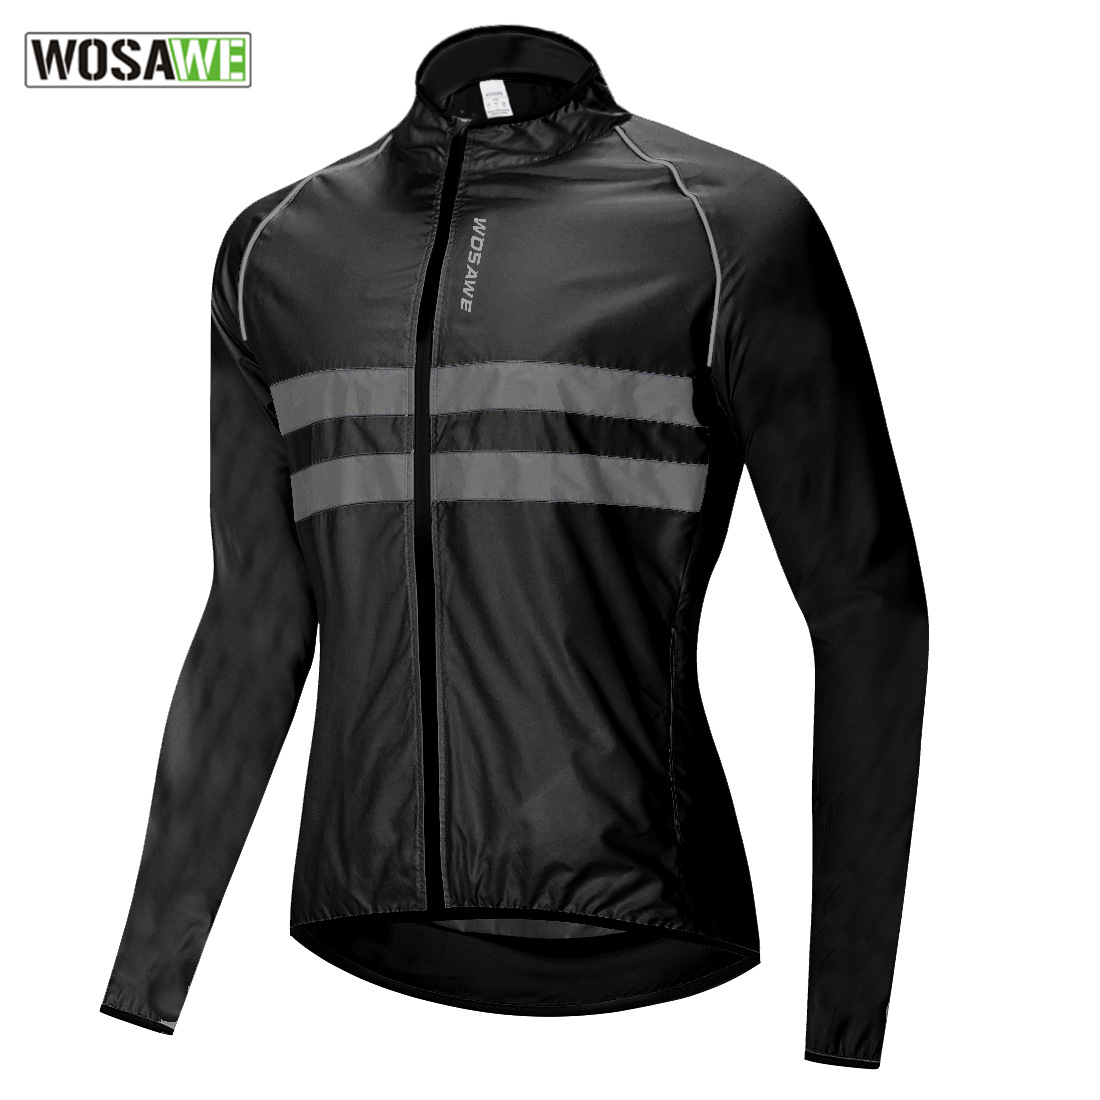 WOSAWE Ultralight Reflective Men's Cycling Jacket Long Waterproof Windproof Road Mountain Bike MTB Jackets Bicycle Windbreaker